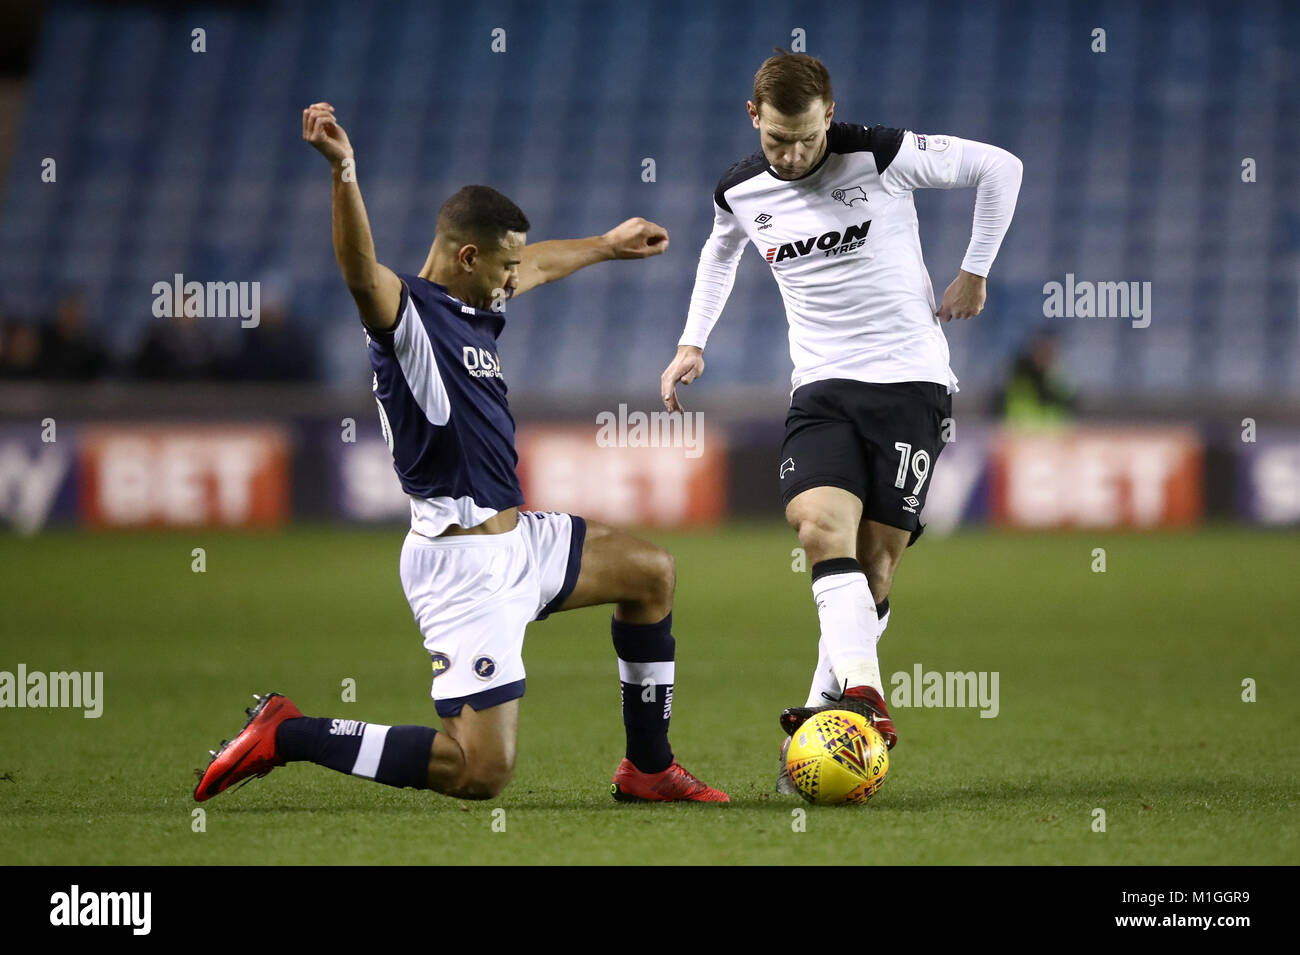 Derby County's Andreas Weimann (right) battles for possession of the ball with Millwall's Shaun Williams - Stock Image